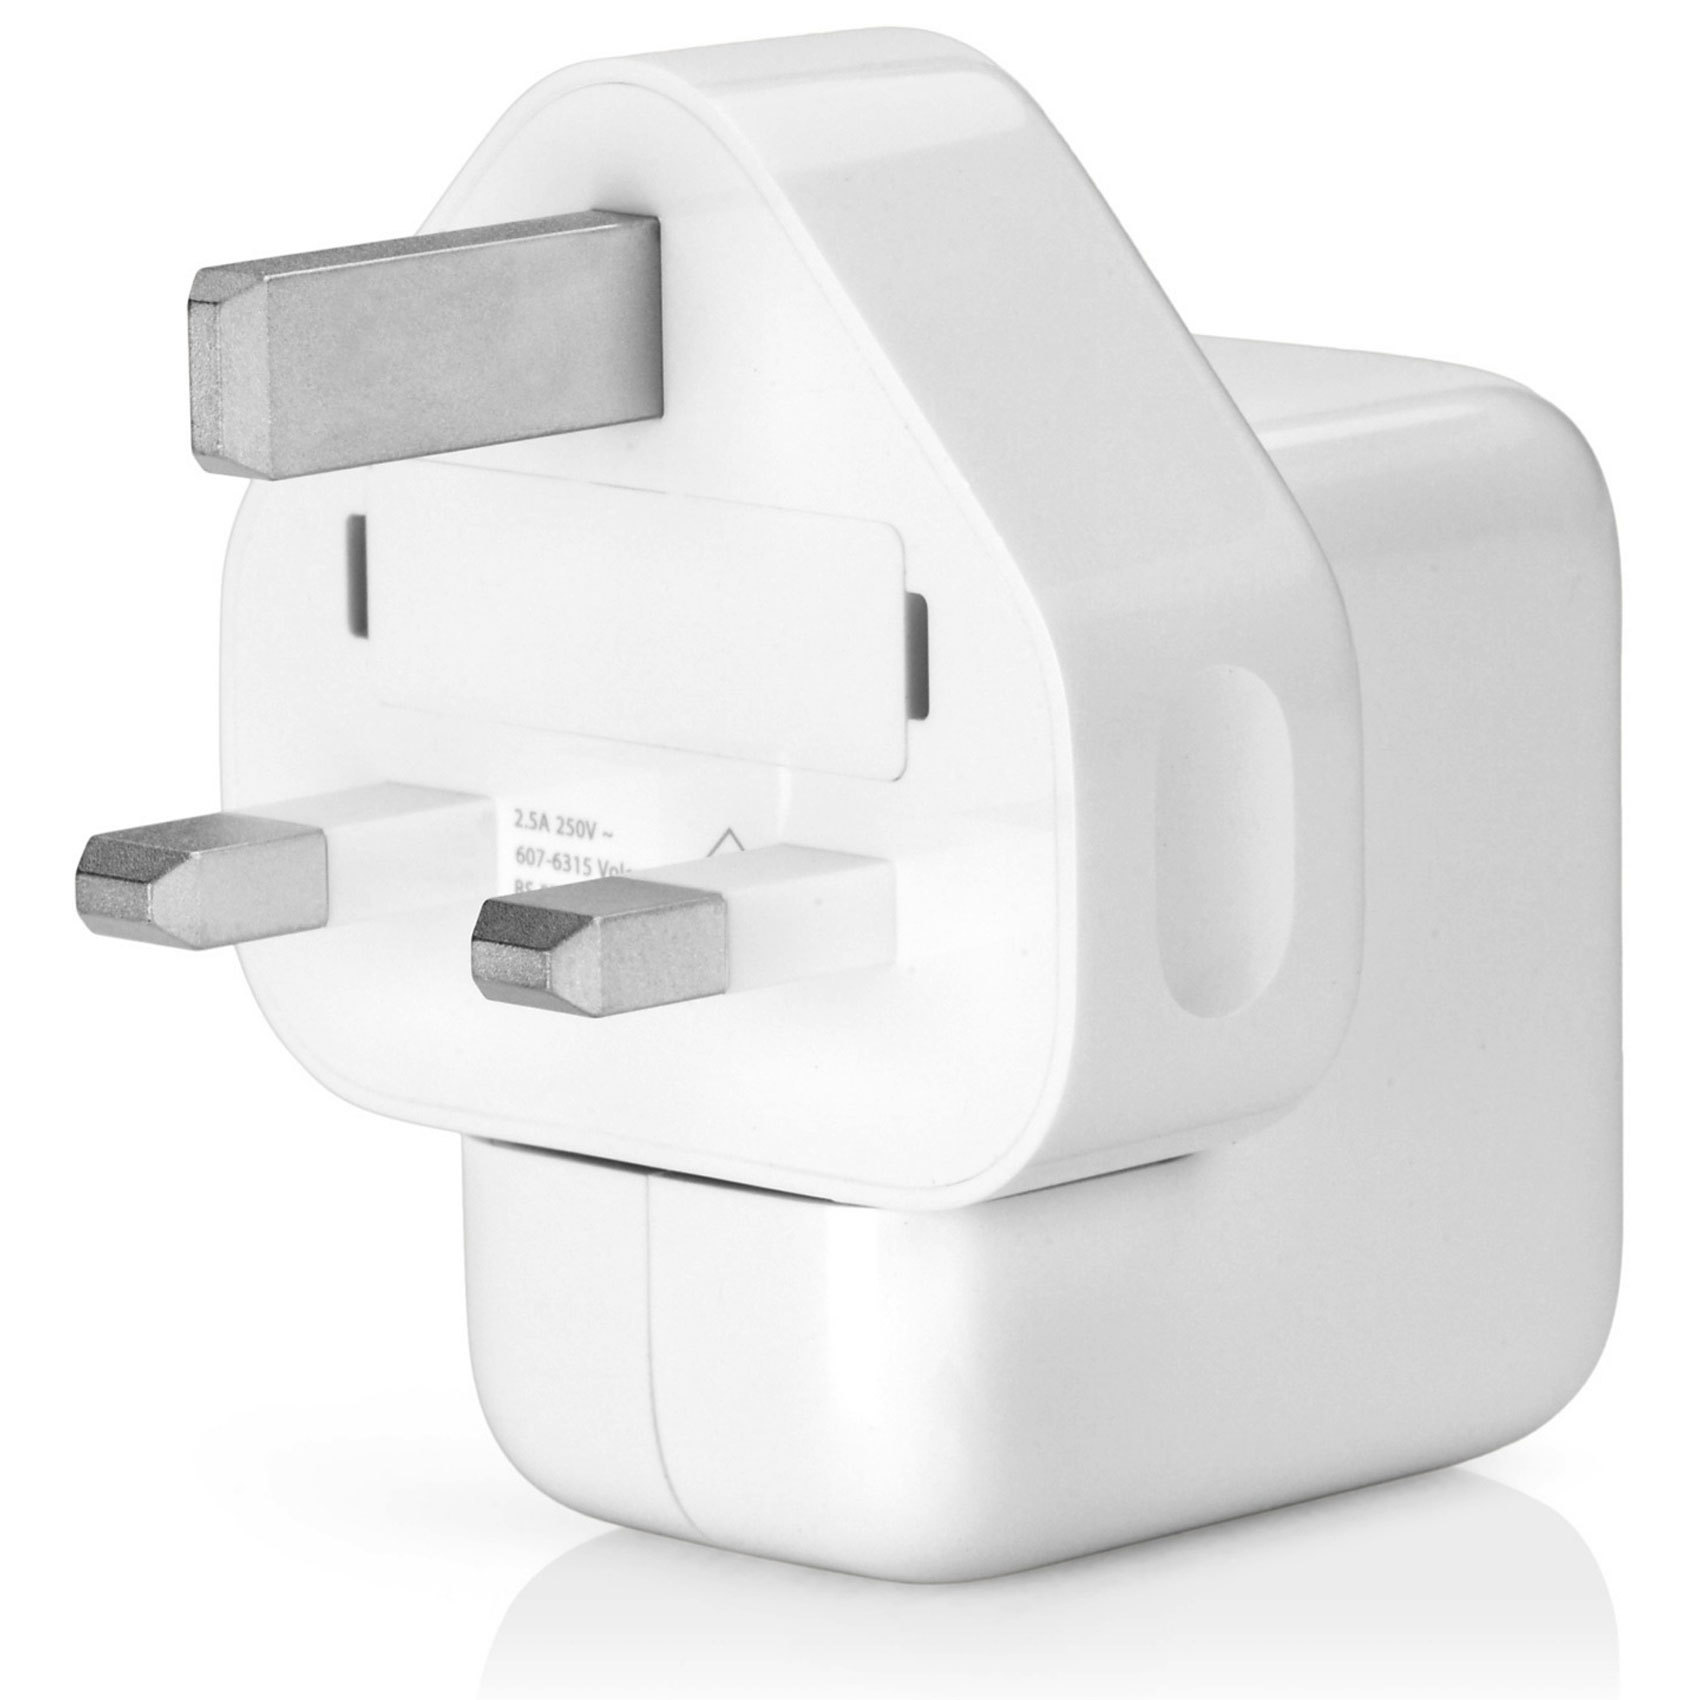 APPLE POWER ADAPTOR MD836B/B 12W